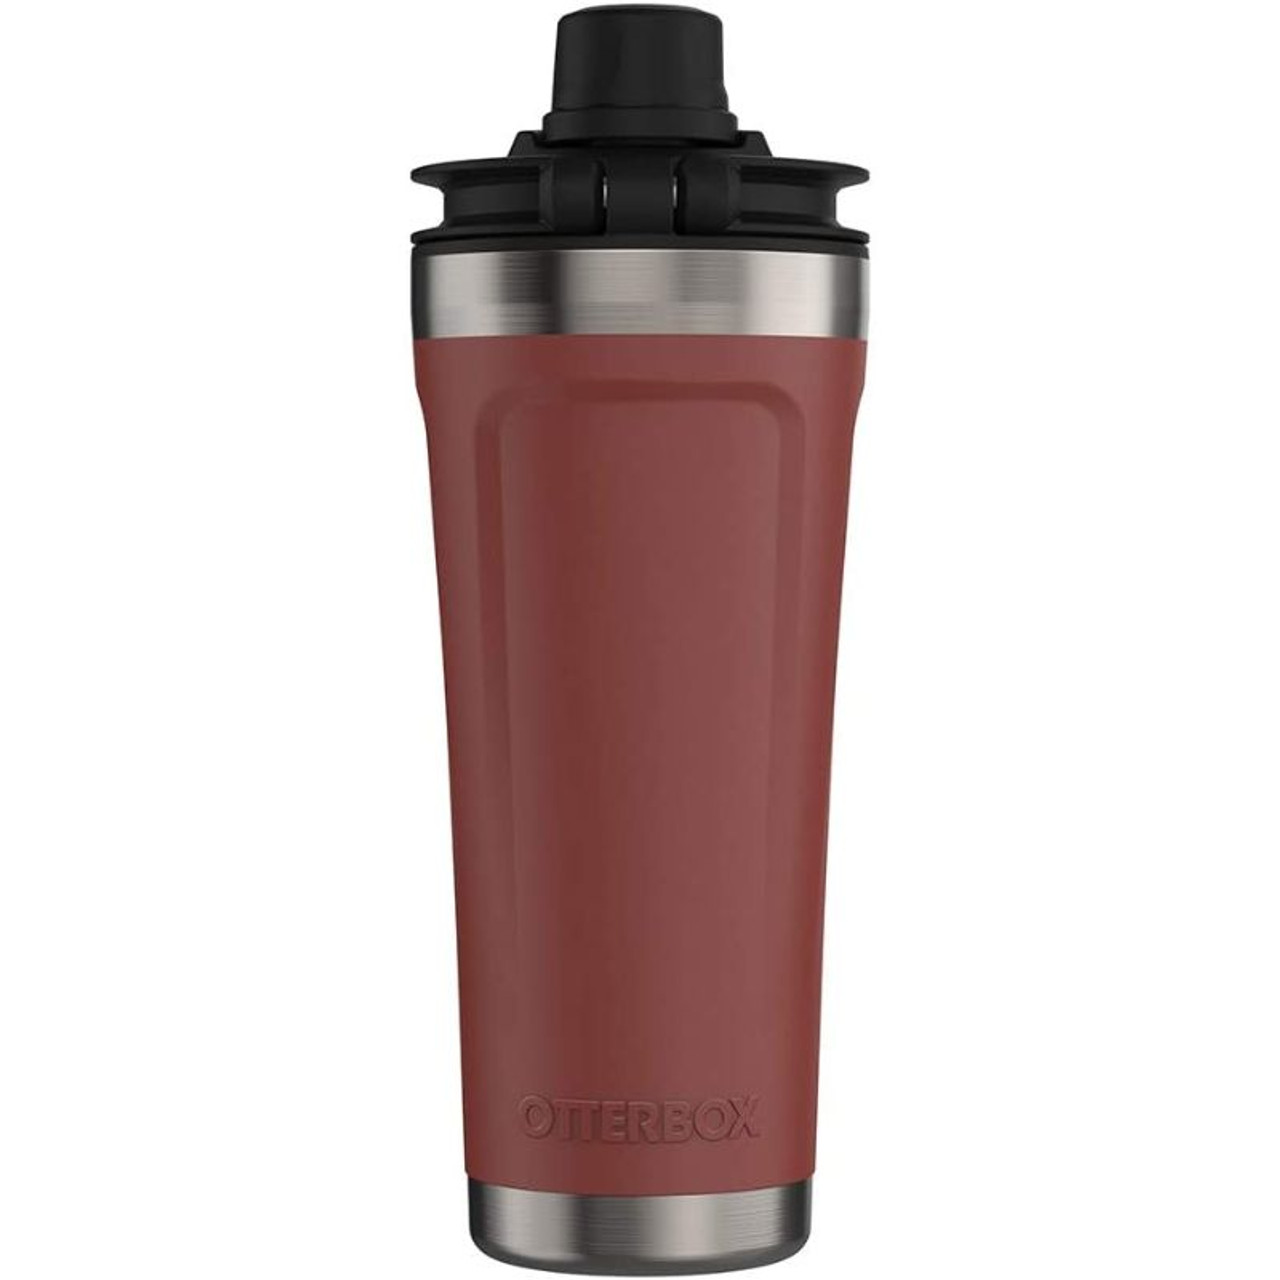 Otterbox Elevation Tumbler with Hydration Lid - 20oz